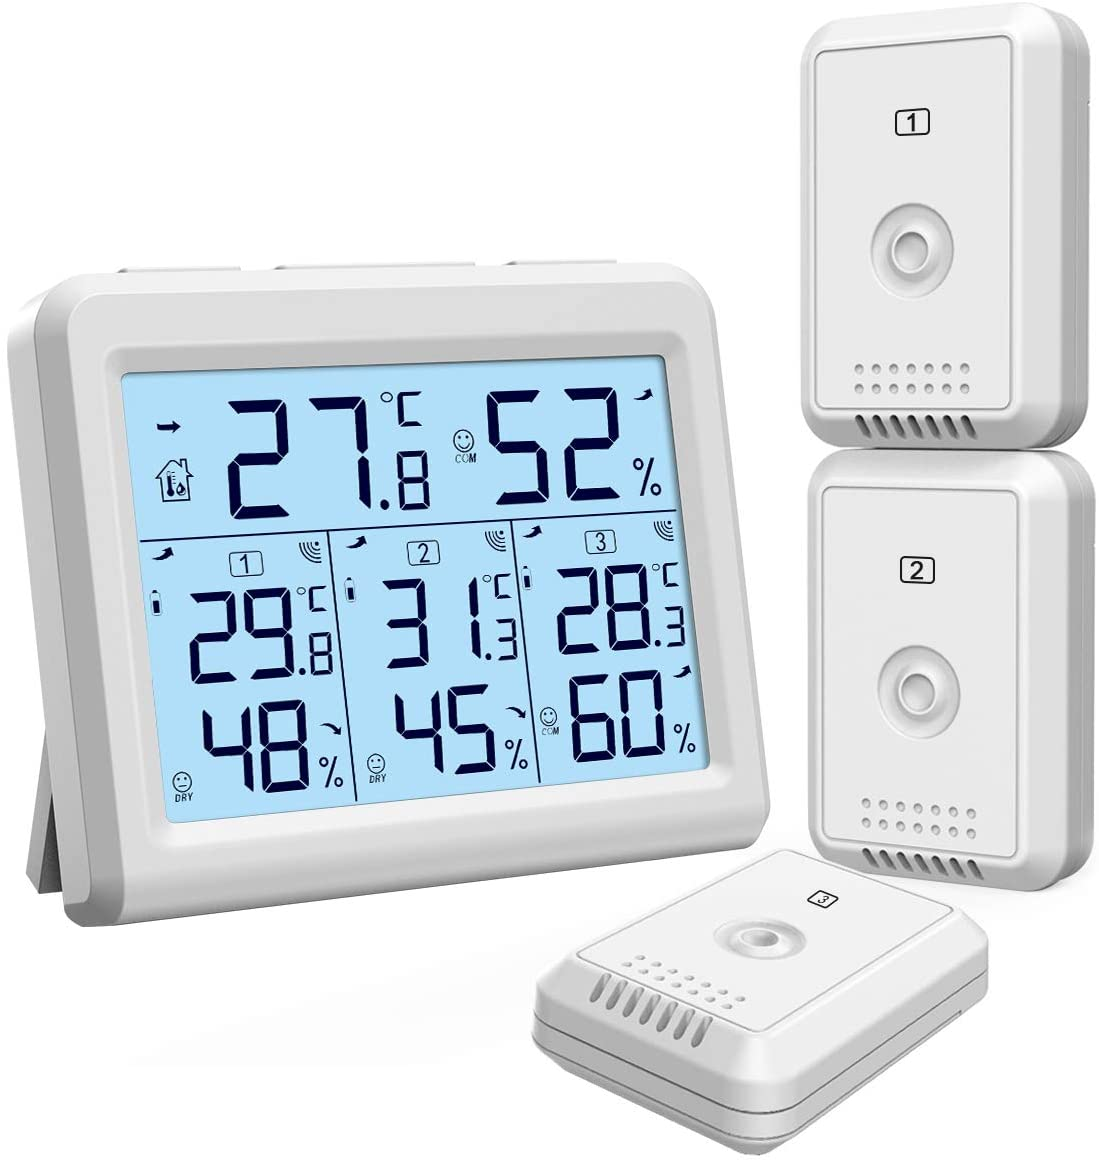 KeeKit Indoor Outdoor Thermometer, Digital Hygrometer Meter Gauge with 3 Wireless Sensors, Temperature Humidity Monitor with LCD Backlight, Min/Max Record for Home, Office, Restaurants, Bars, Cafe